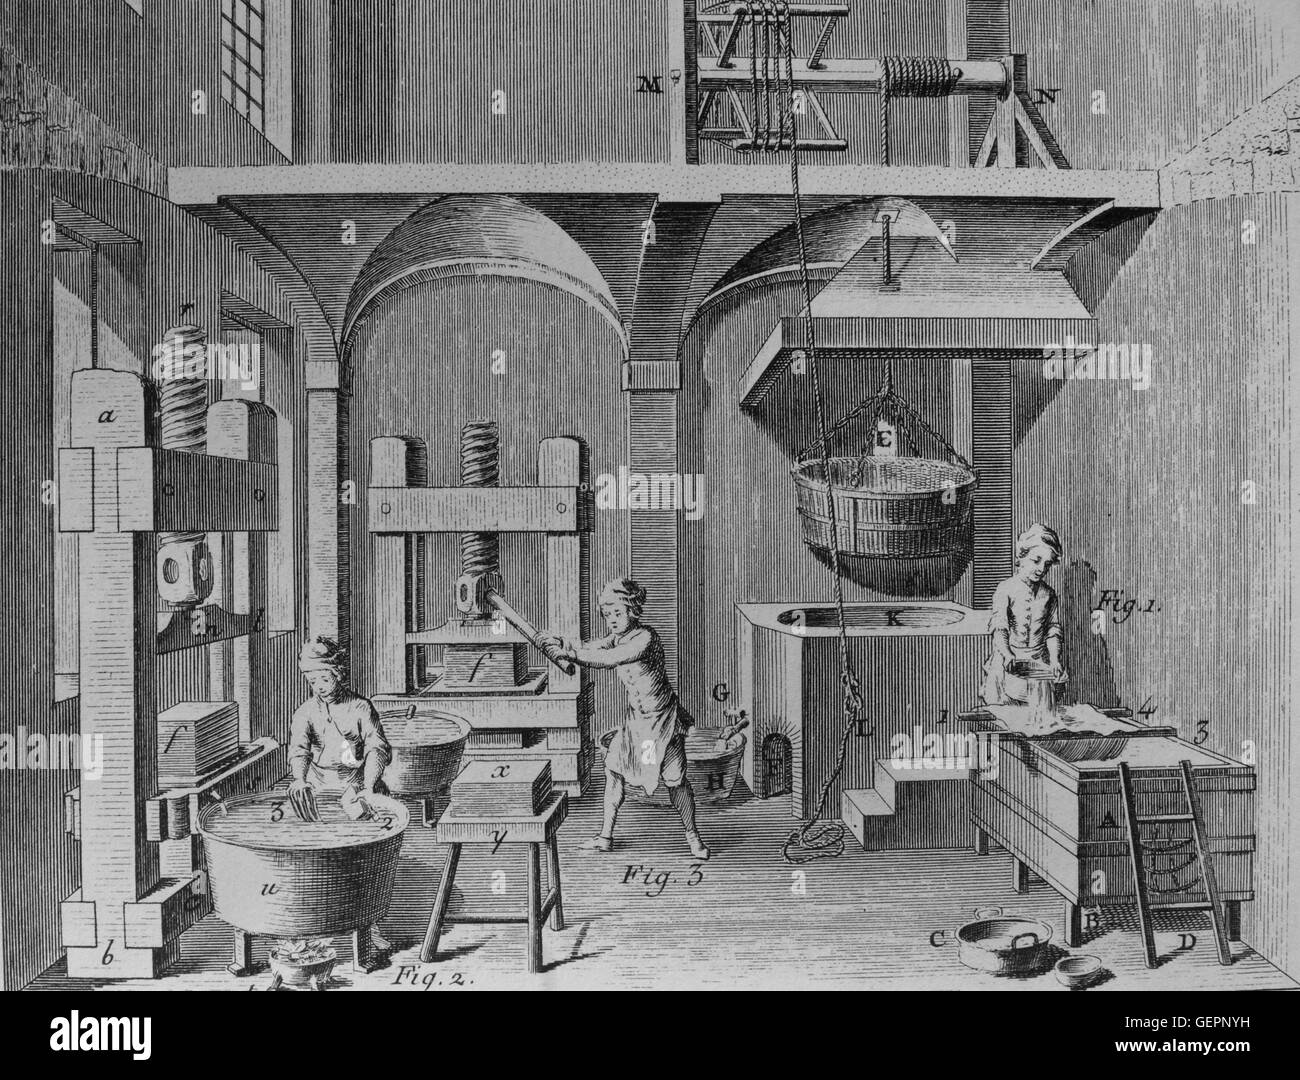 Encyclopedie. Edited by Denis Diderot and Jean Le Rond D'Alembert. Published, 1770. Plate 366. Paper manufacturers. - Stock Image